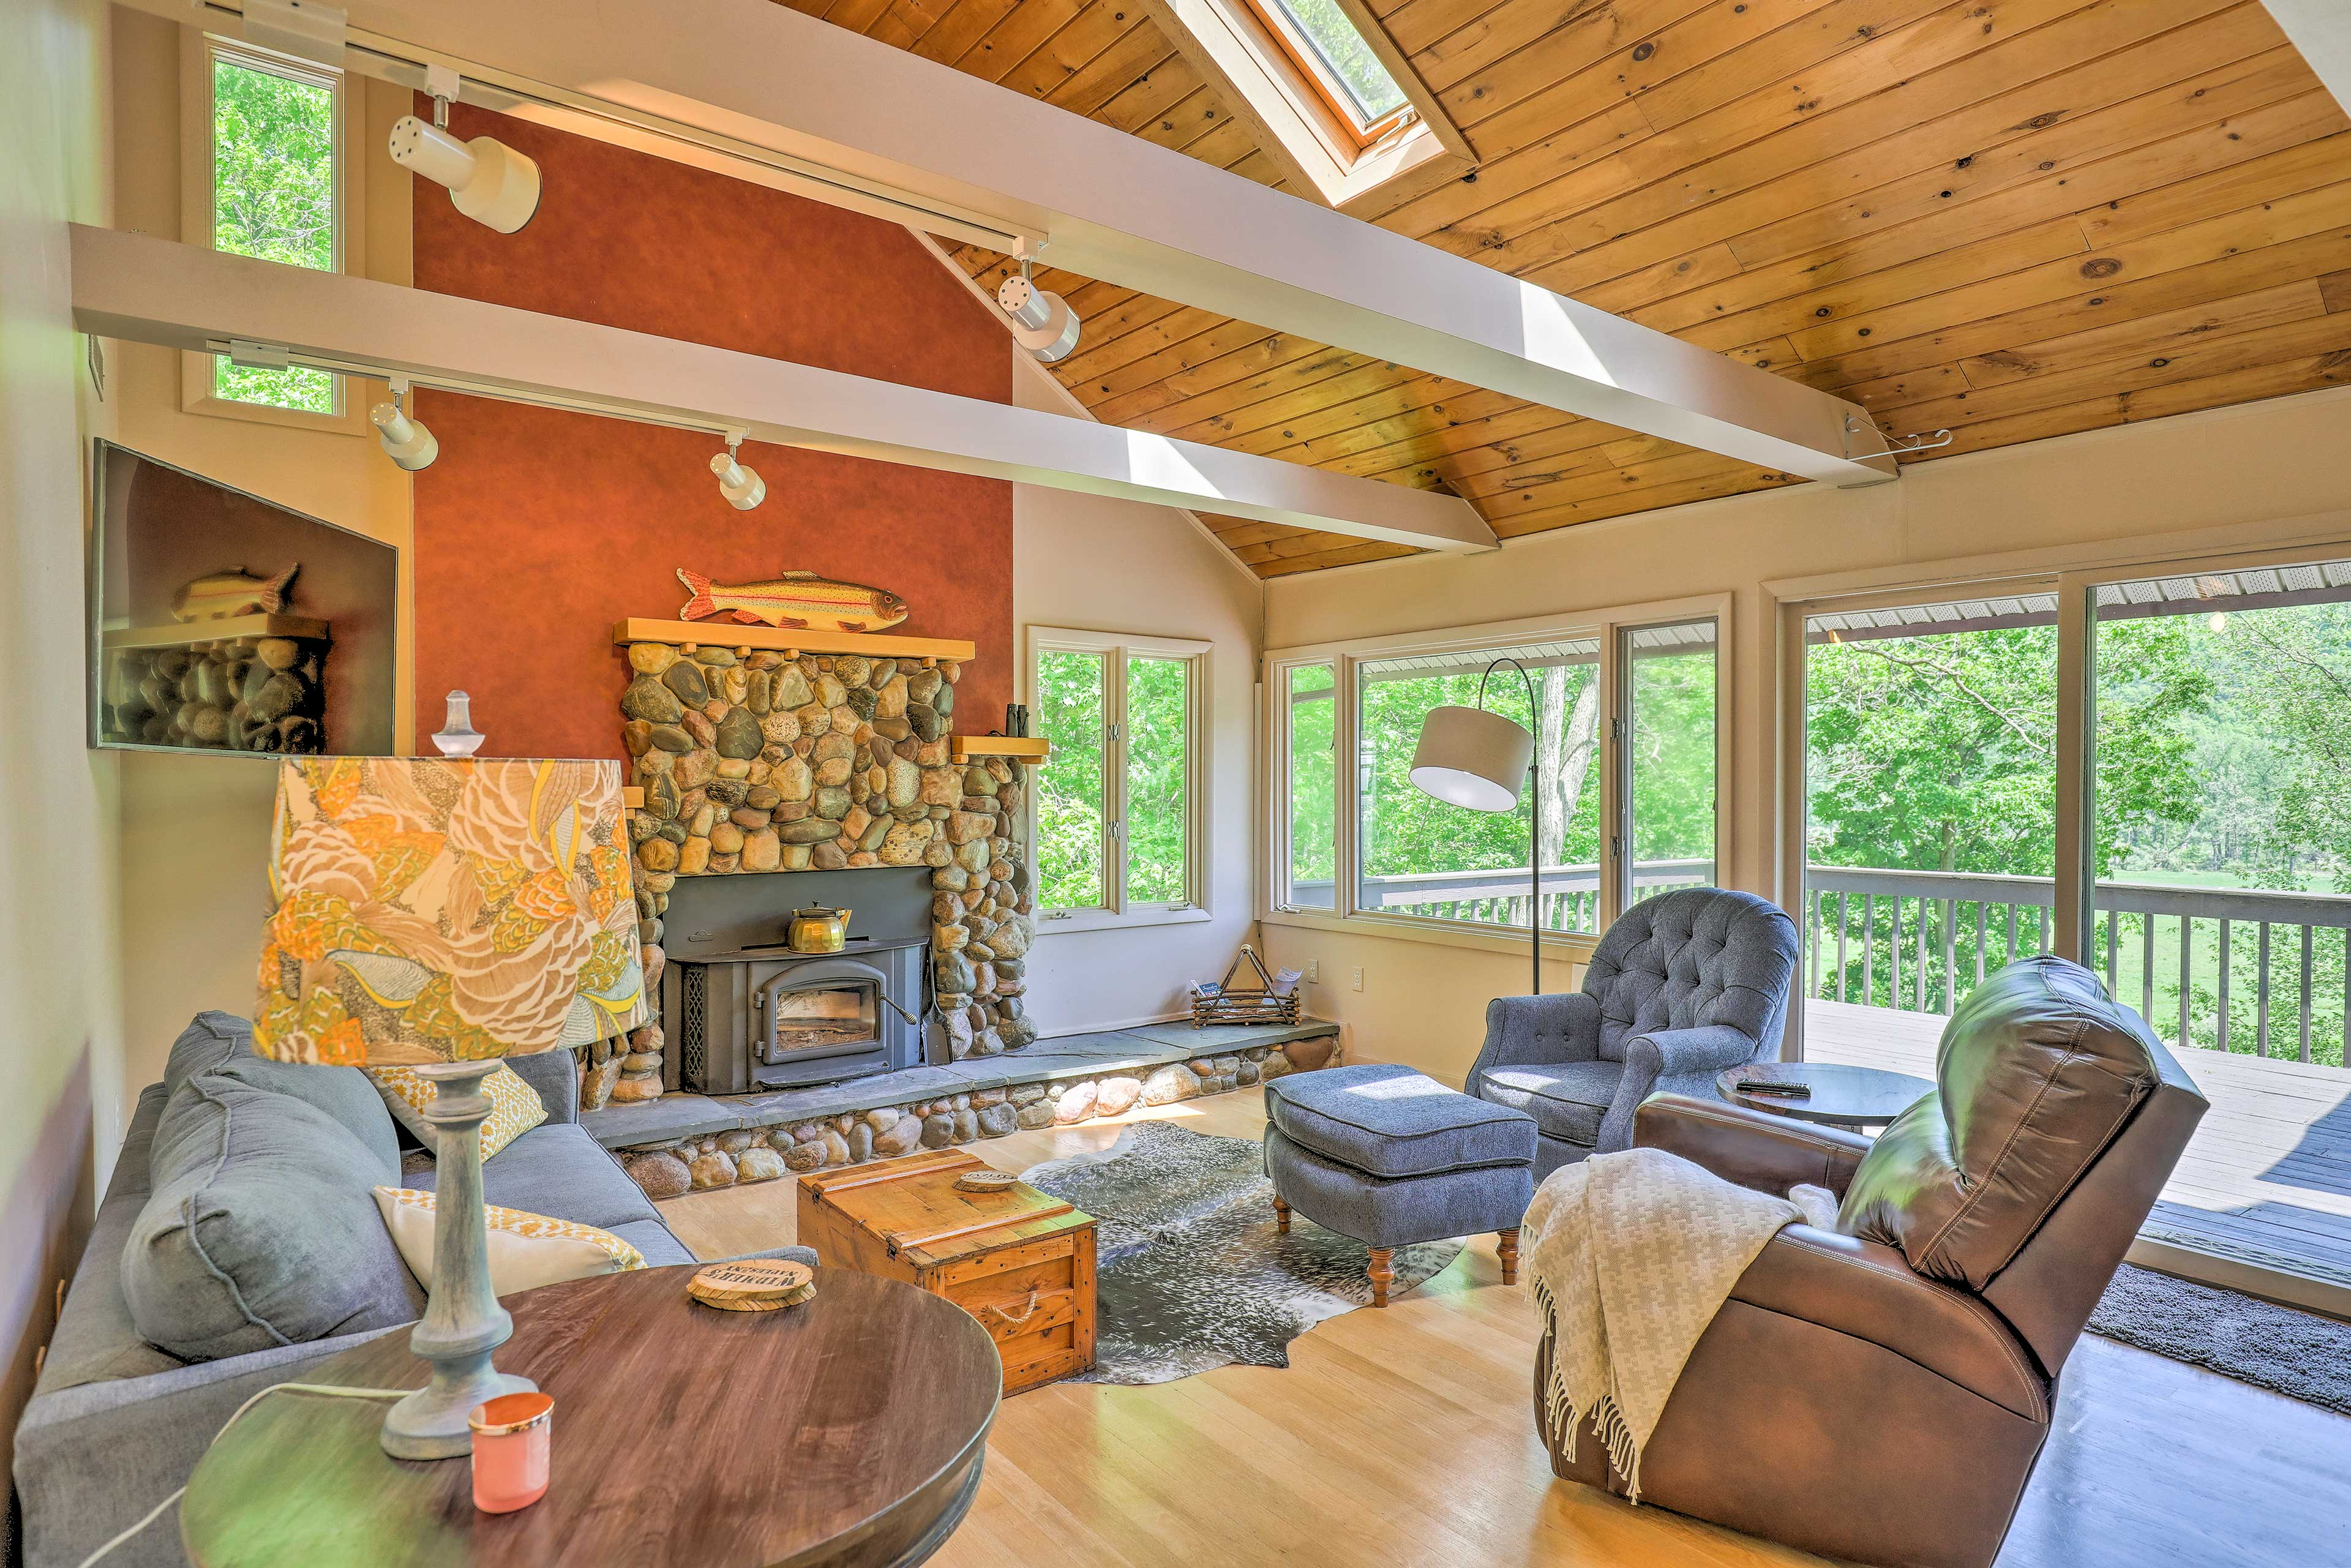 Wall-to-wall windows and sliding glass doors open to the deck and valley.